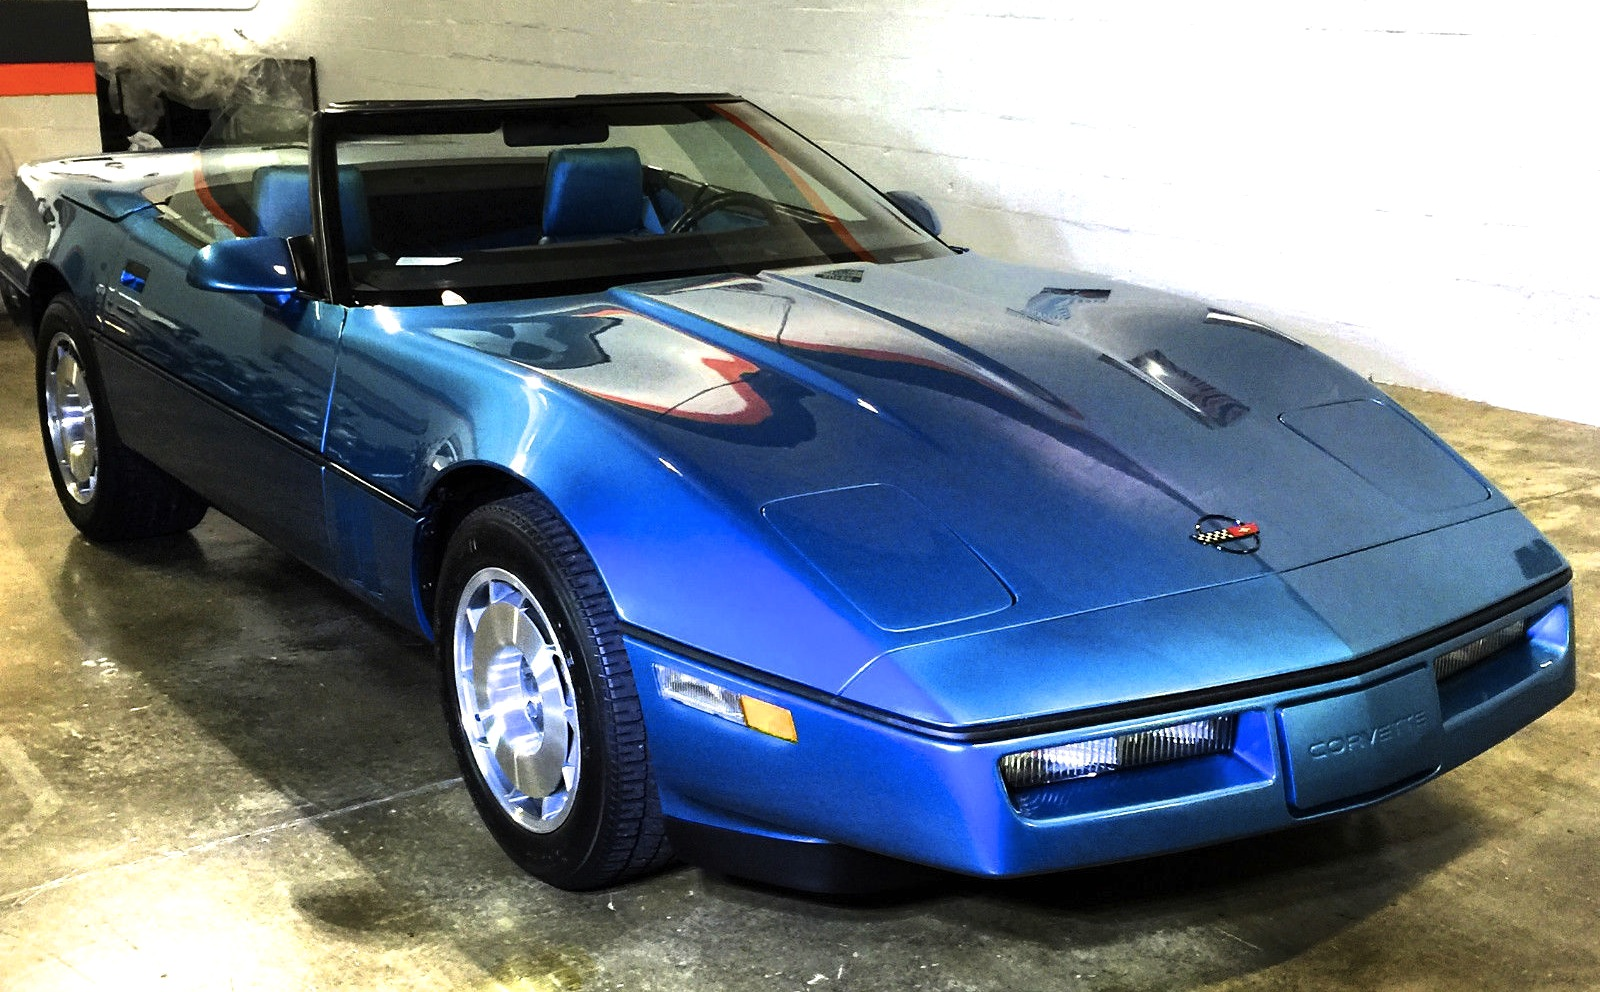 Time Capsule 1k Miles 1987 Corvette Convertible Up For